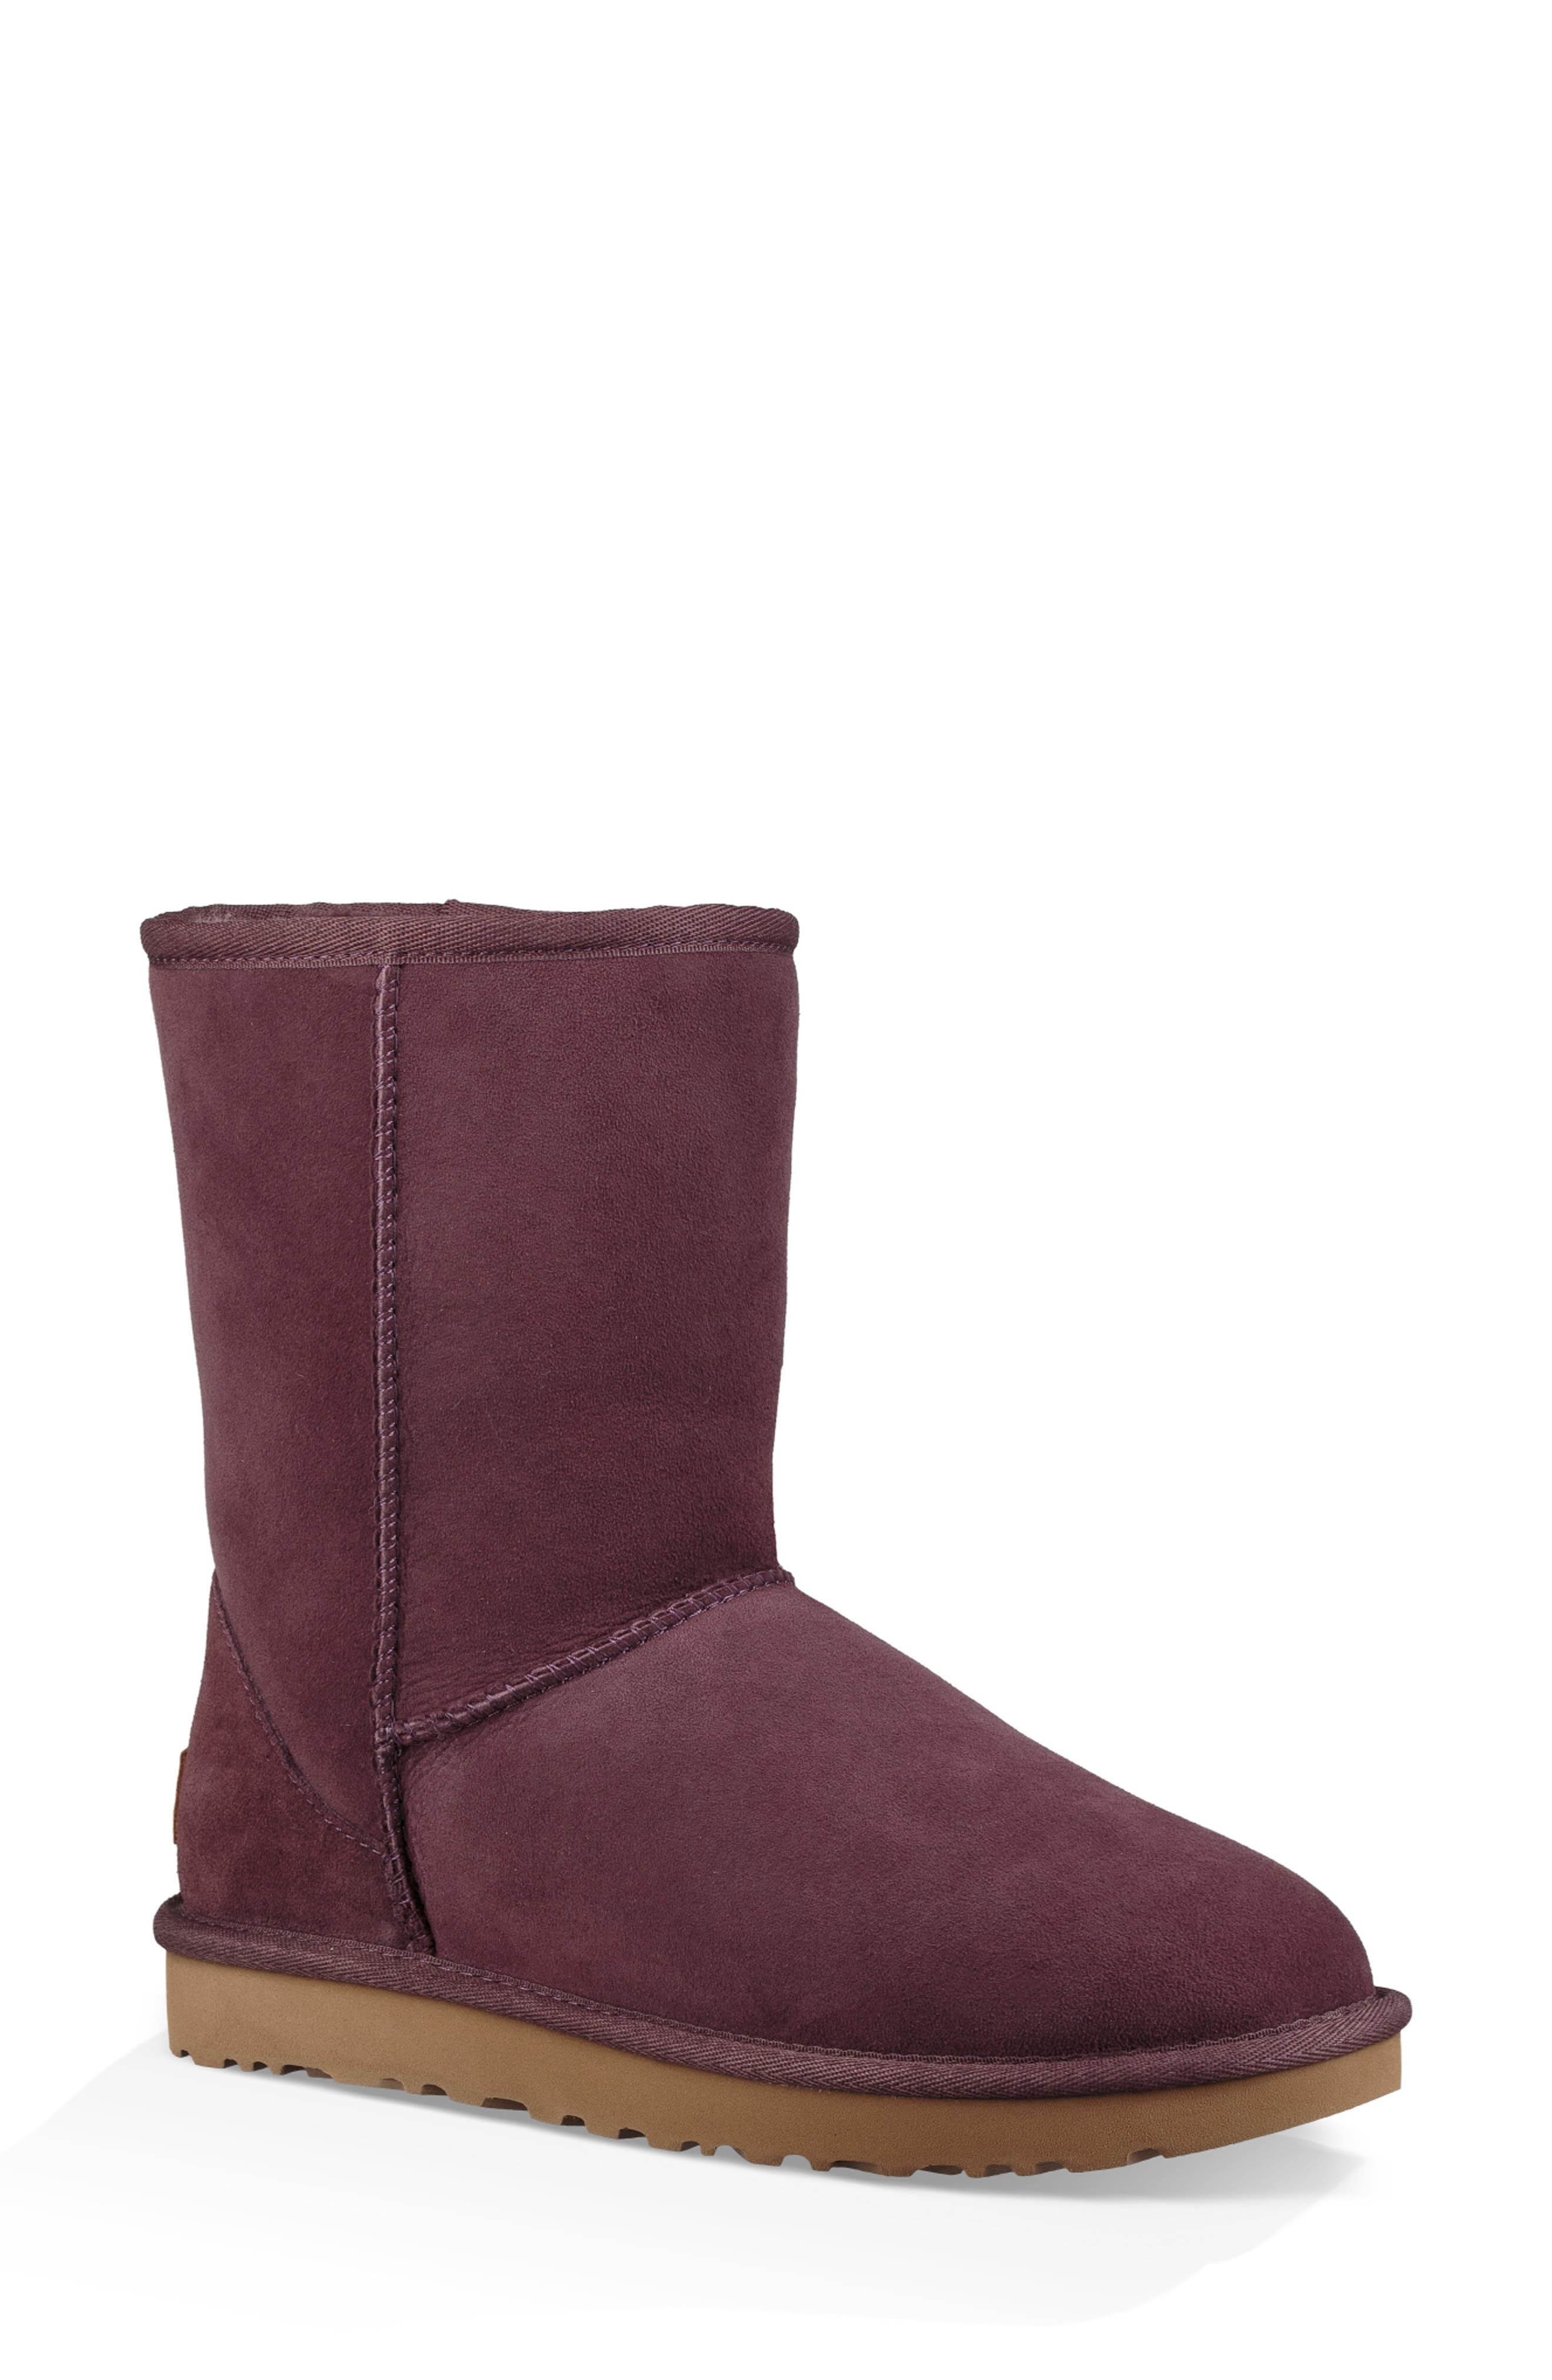 'Classic II' Genuine Shearling Lined Short Boot,                         Main,                         color, Port